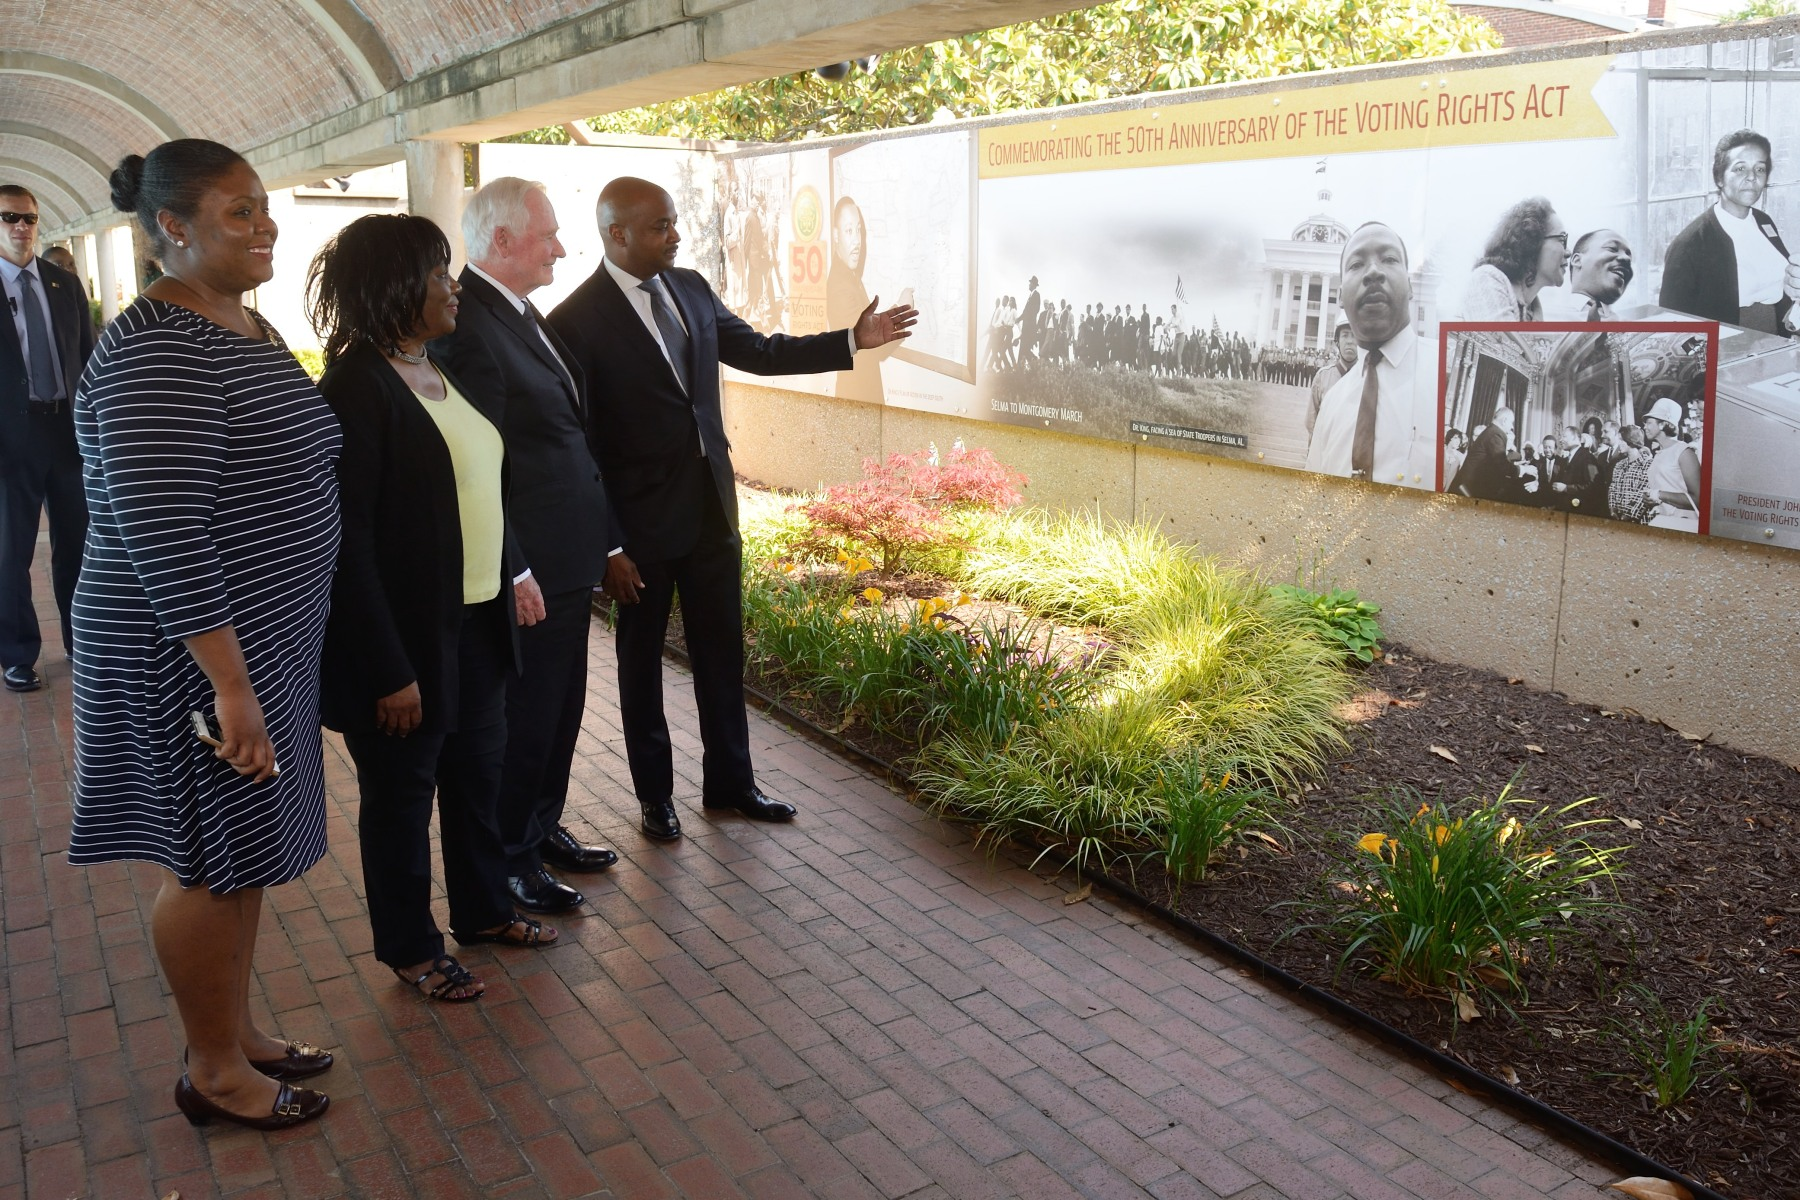 The Governor General toured the Martin Luther King, Jr. Center for Nonviolent Social Change (The King Center). The King Center was established in 1968 by Mrs. Coretta Scott King. Nearly 1 million people each year make a pilgrimage to the National Historic site to learn, be inspired and pay their respects to Dr. and Mrs. King's legacies.